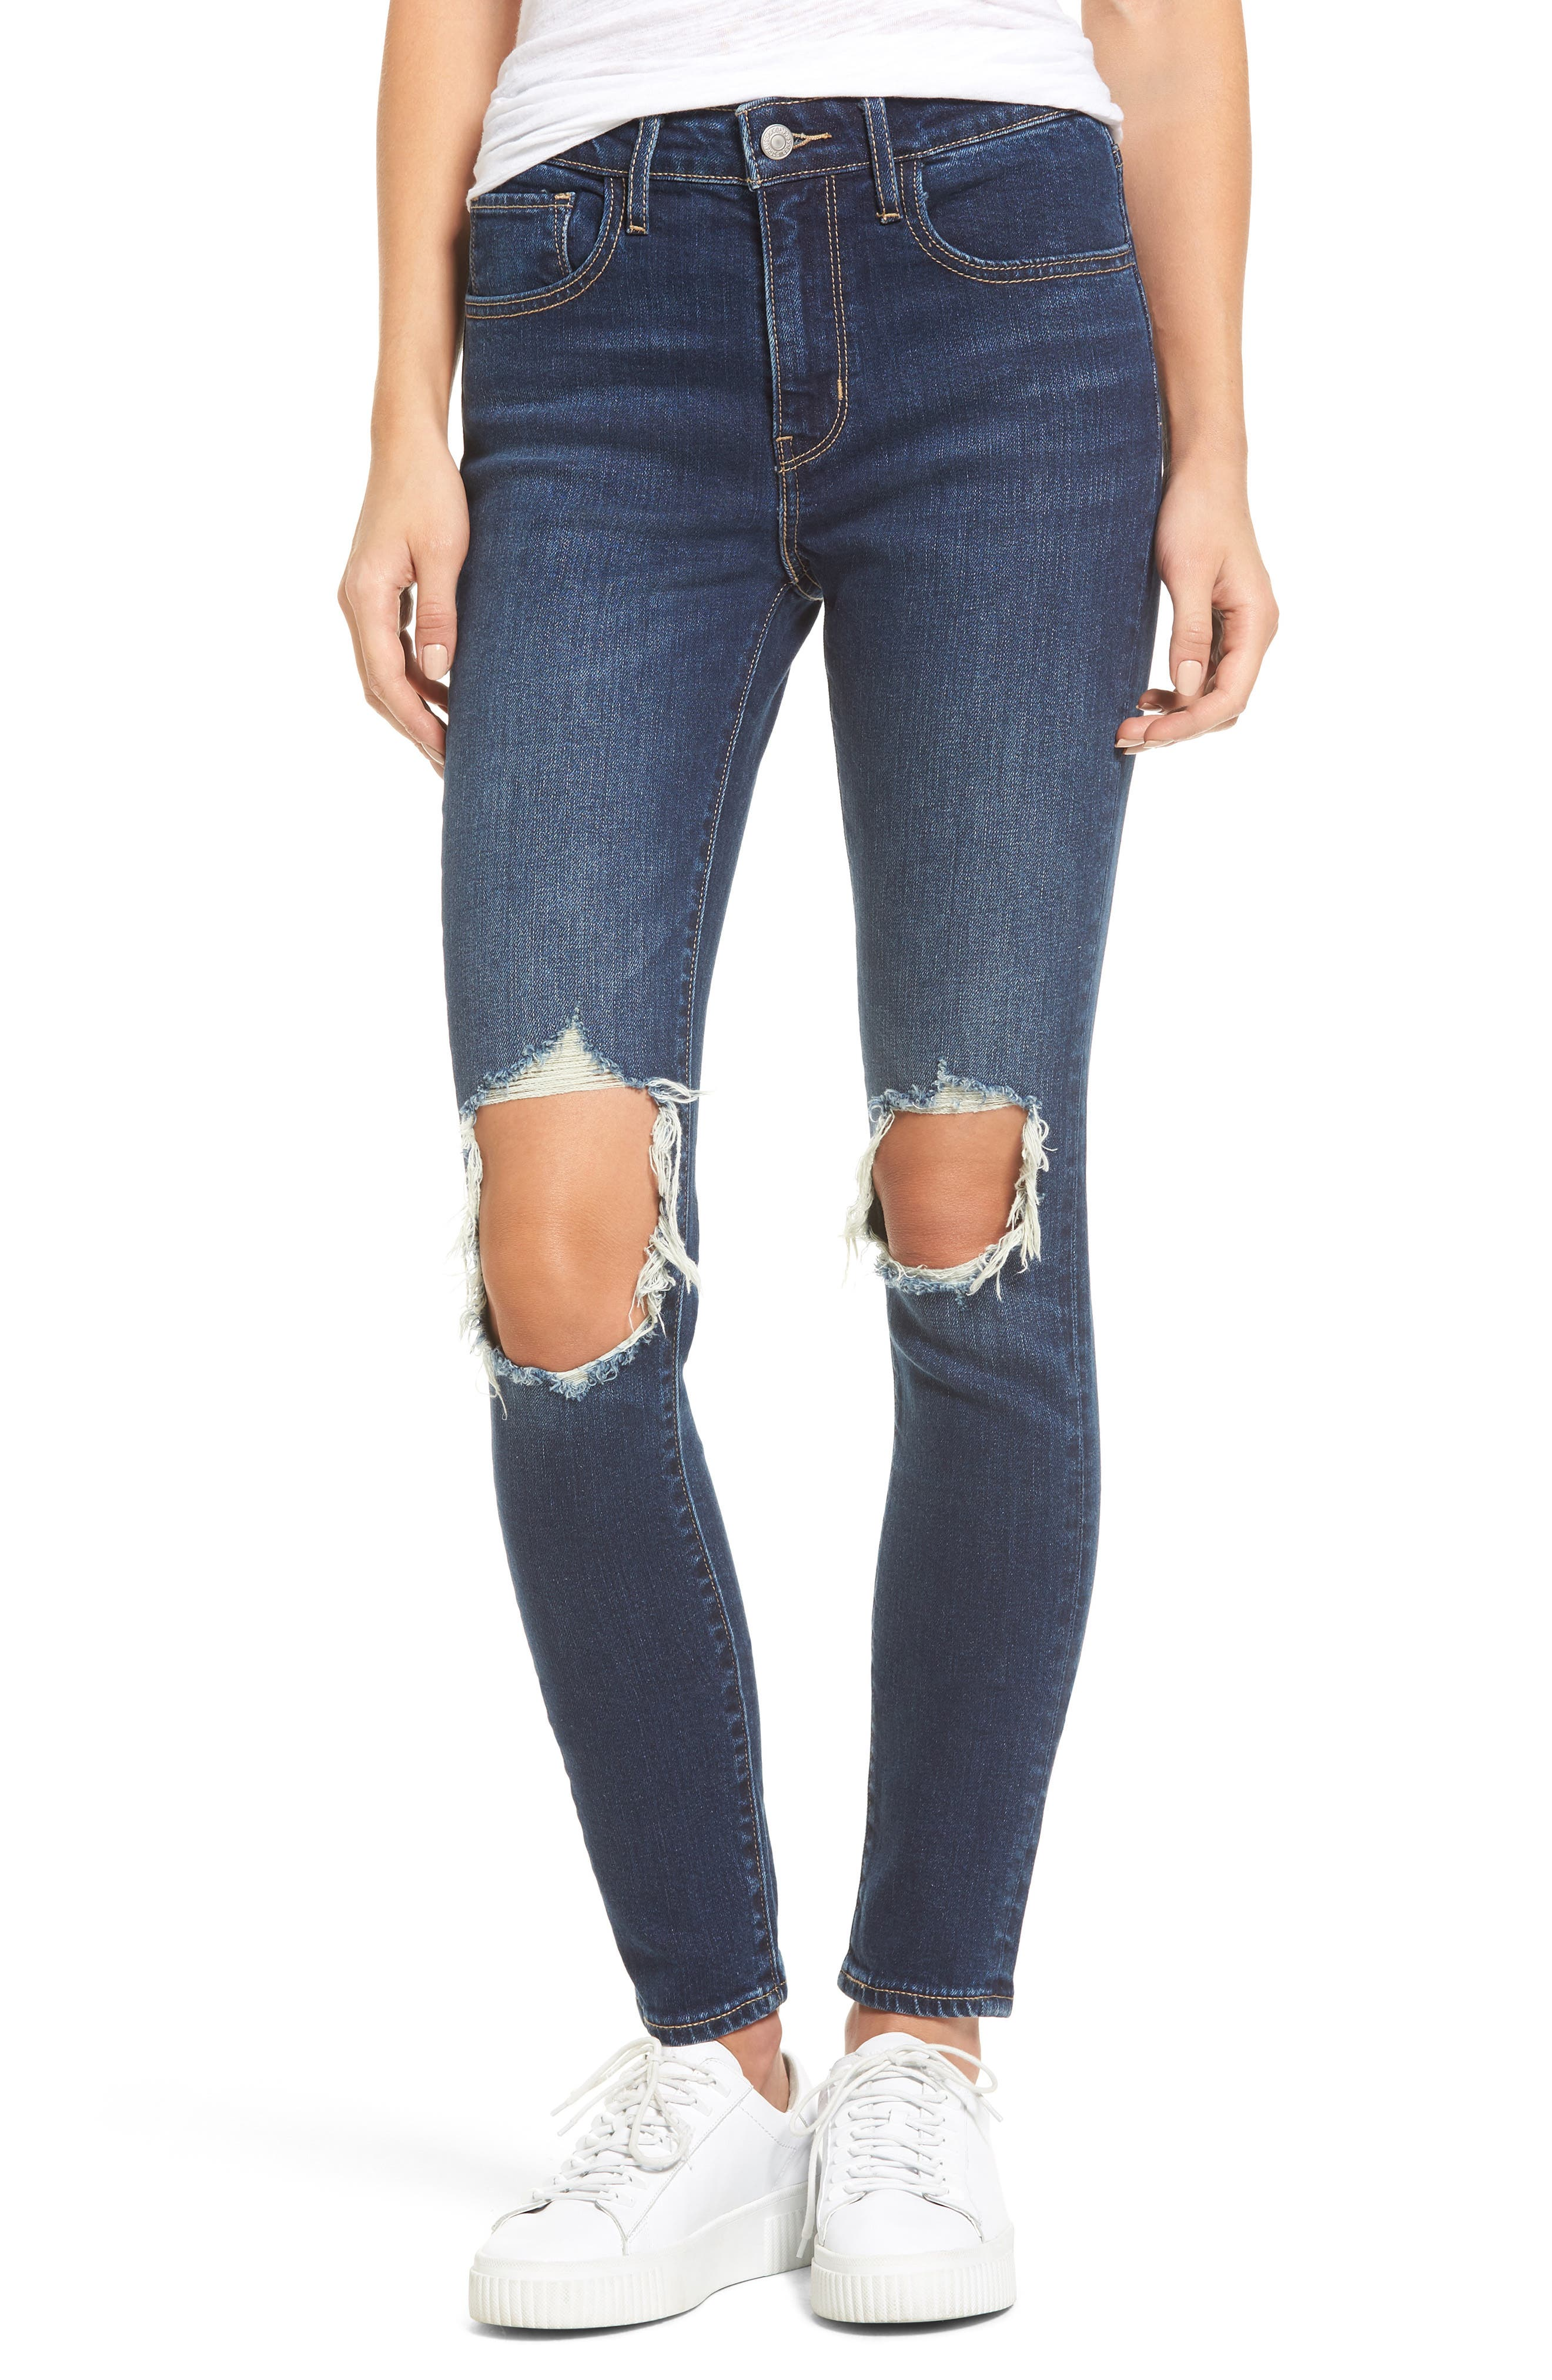 721 Ripped High Waist Skinny Jeans,                         Main,                         color, 420